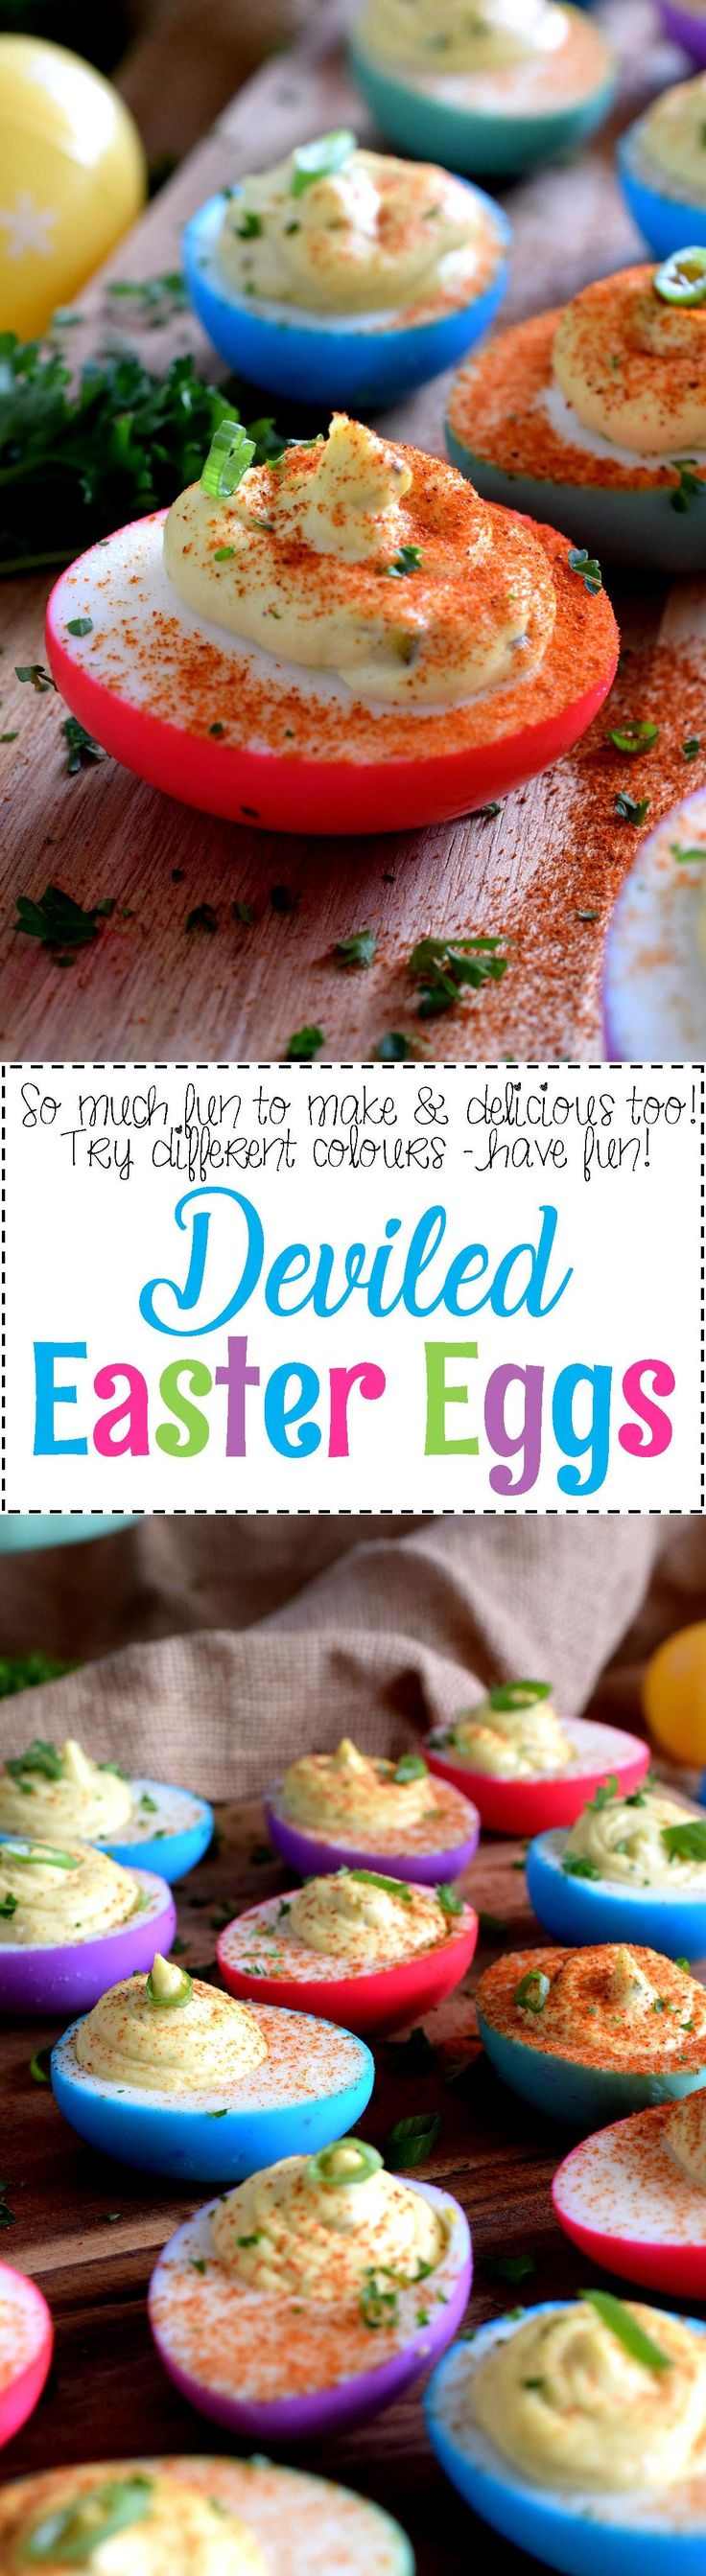 Deviled Easter Eggs - aster isn't Easter without boiled eggs, so why not have some fun and make a batch of very Easter-y and very colourful Deviled Easter Eggs!?